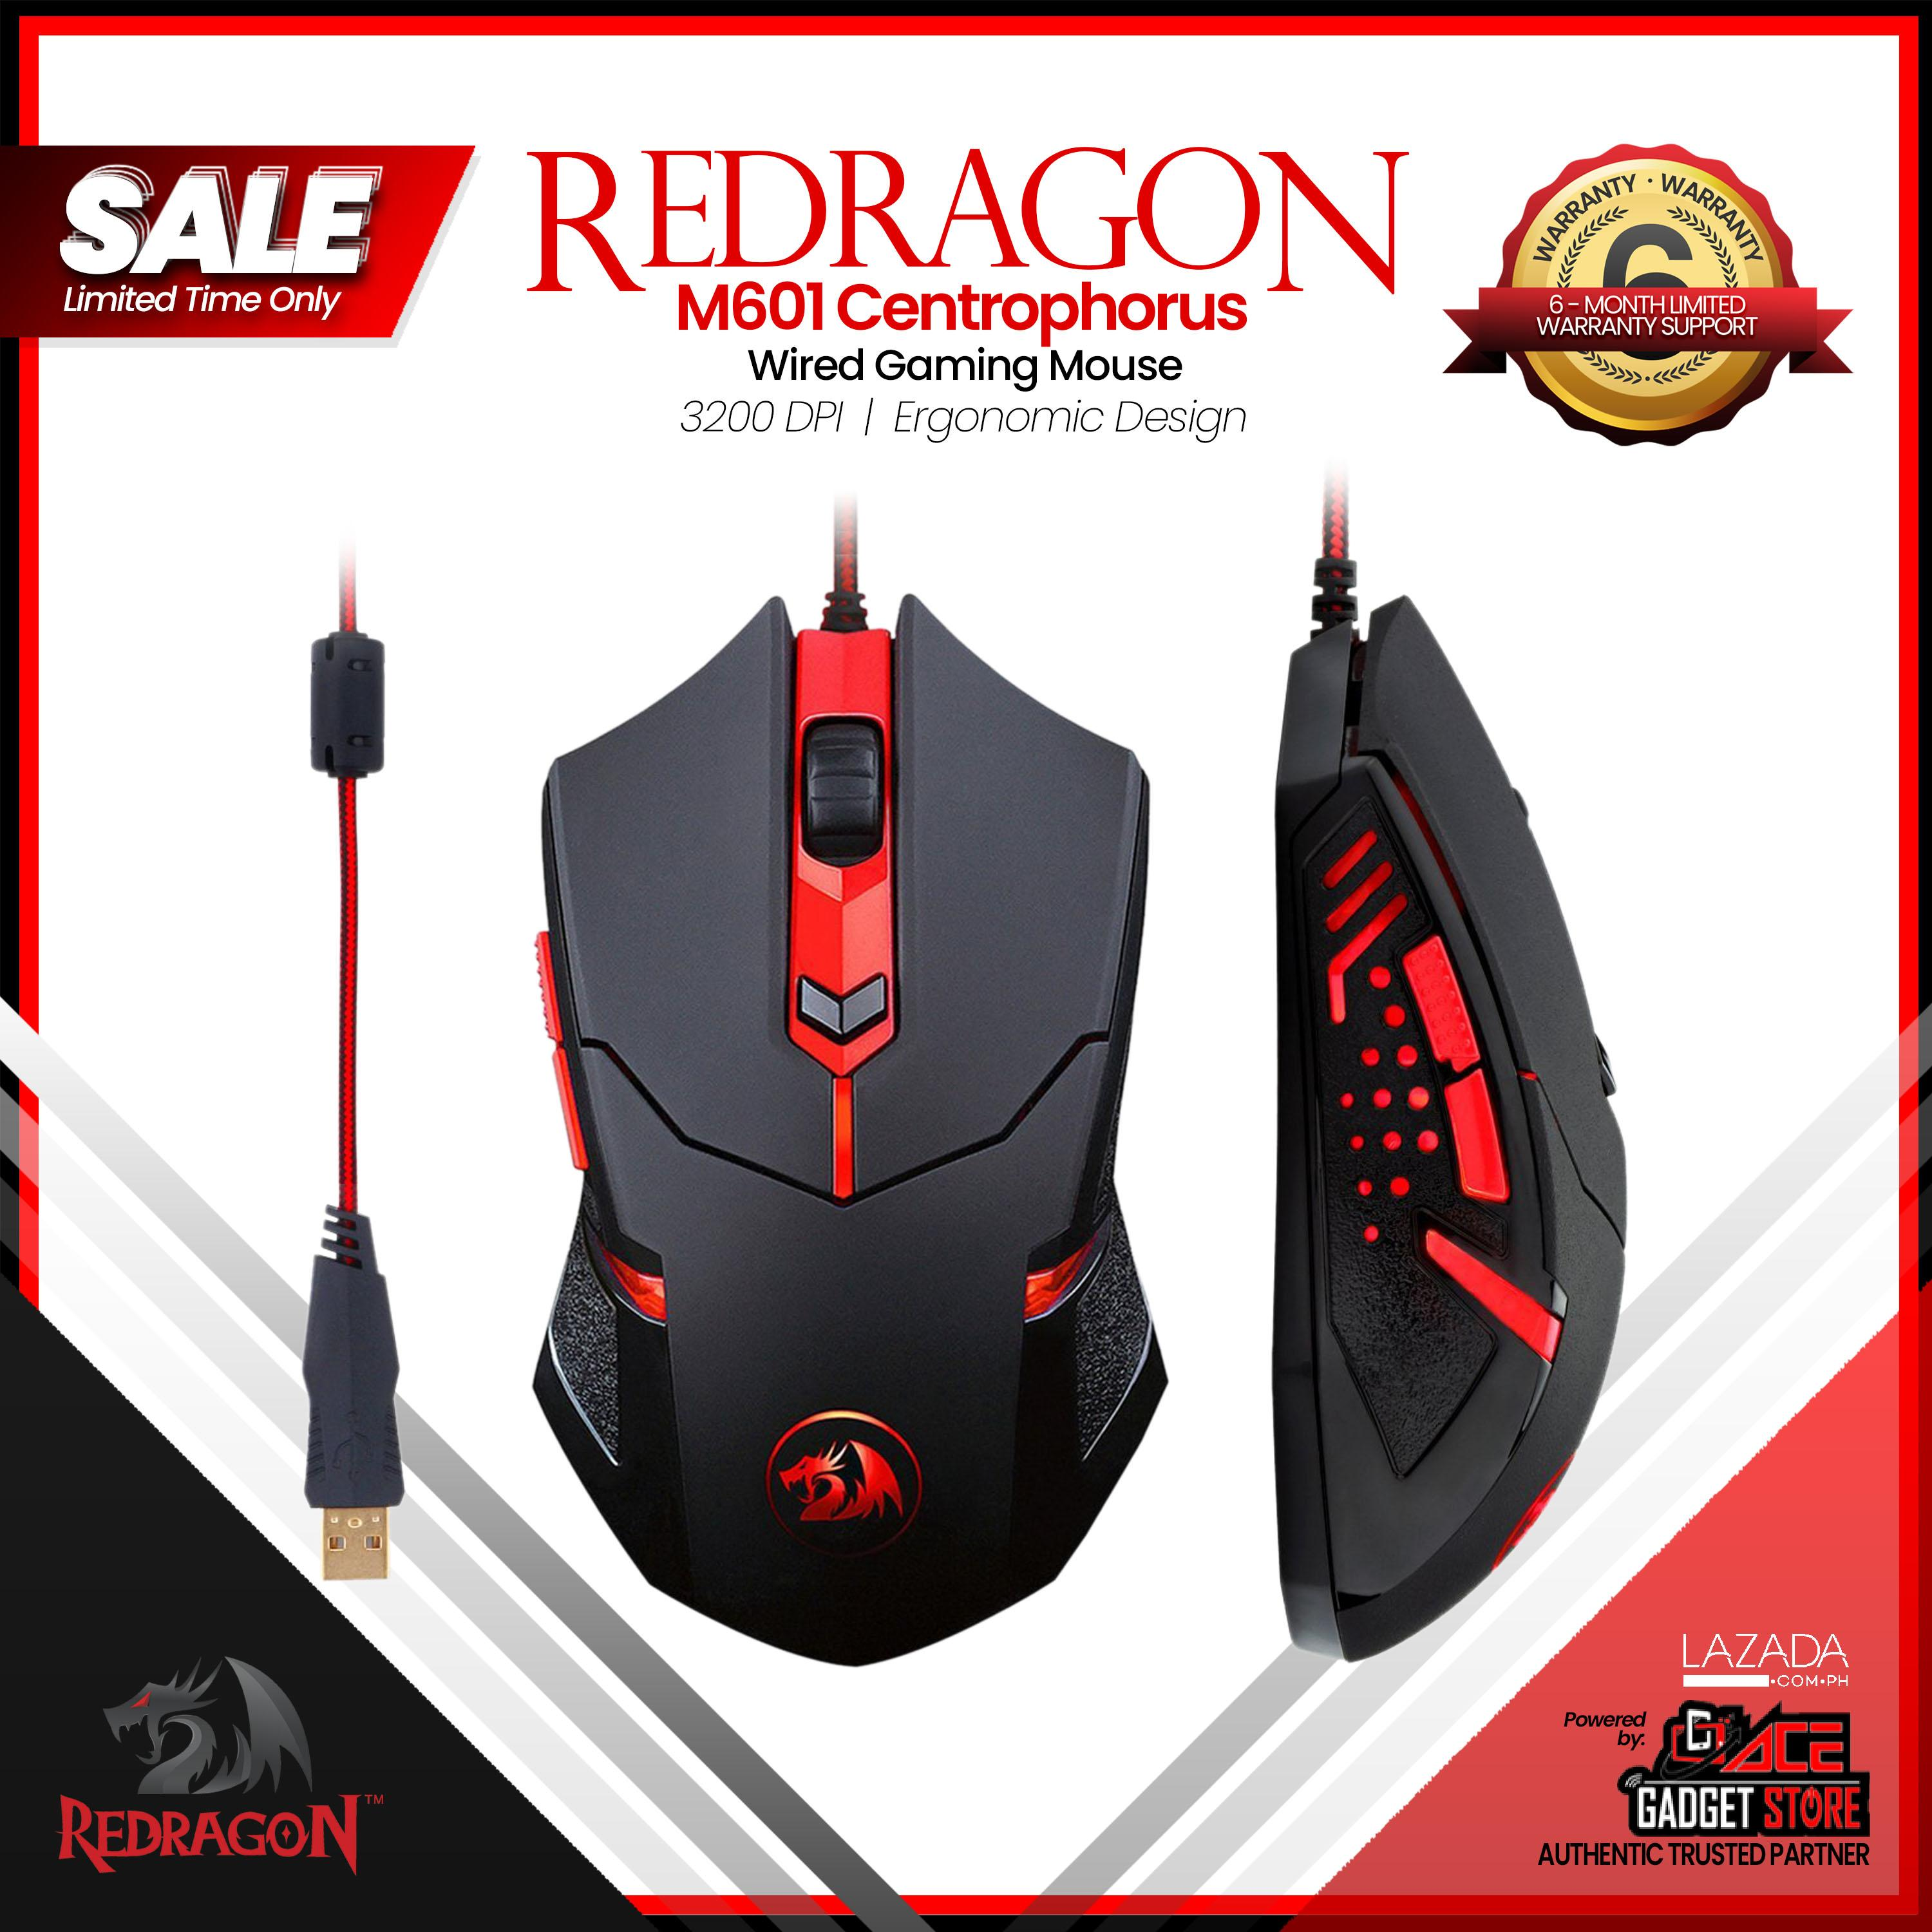 Redragon M601 Centrophorus Wired Gaming Mouse, Ergonomic, Programmable 6  Buttons, 3200 DPI, Red LED Backlight - Black